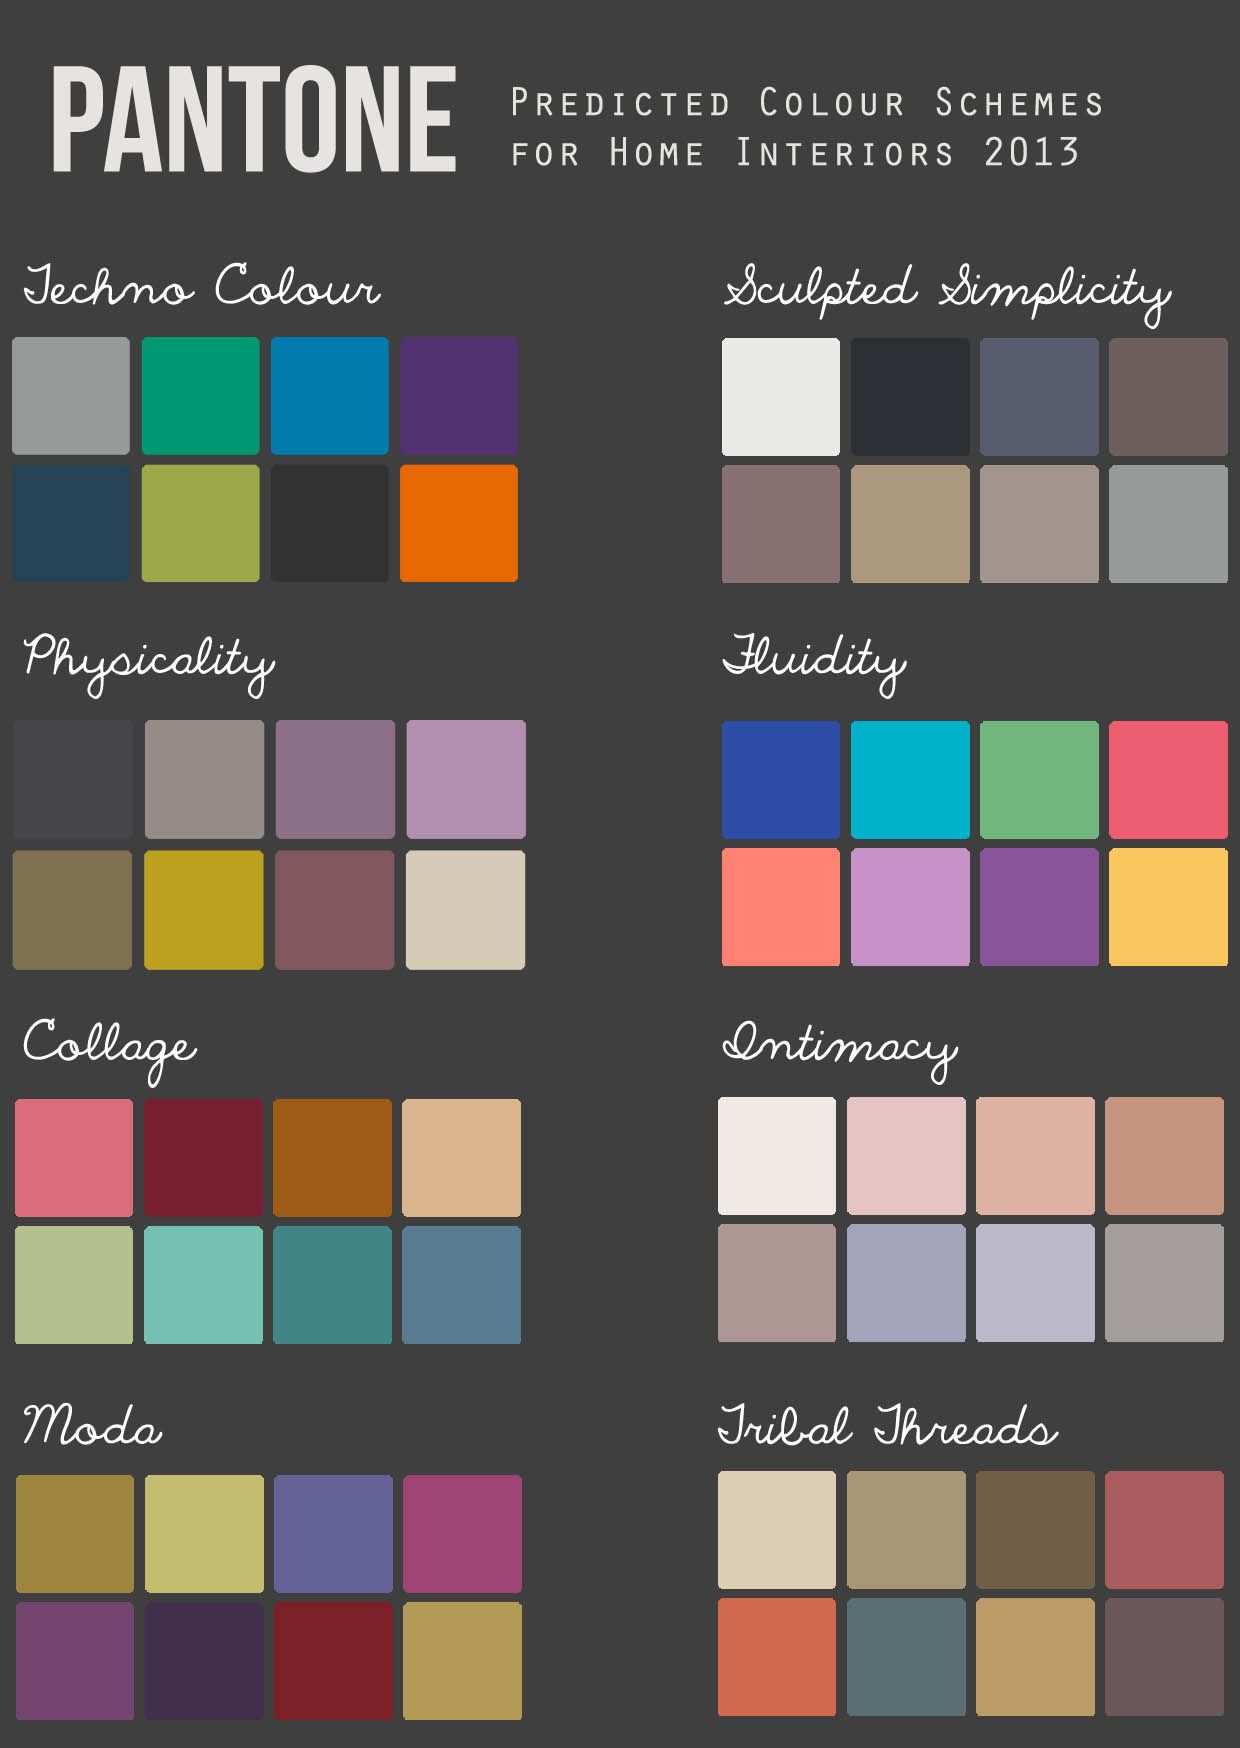 Interior Color Schemes 2014 pantone colour schemes for home interiors 2014 | cores - estilos e